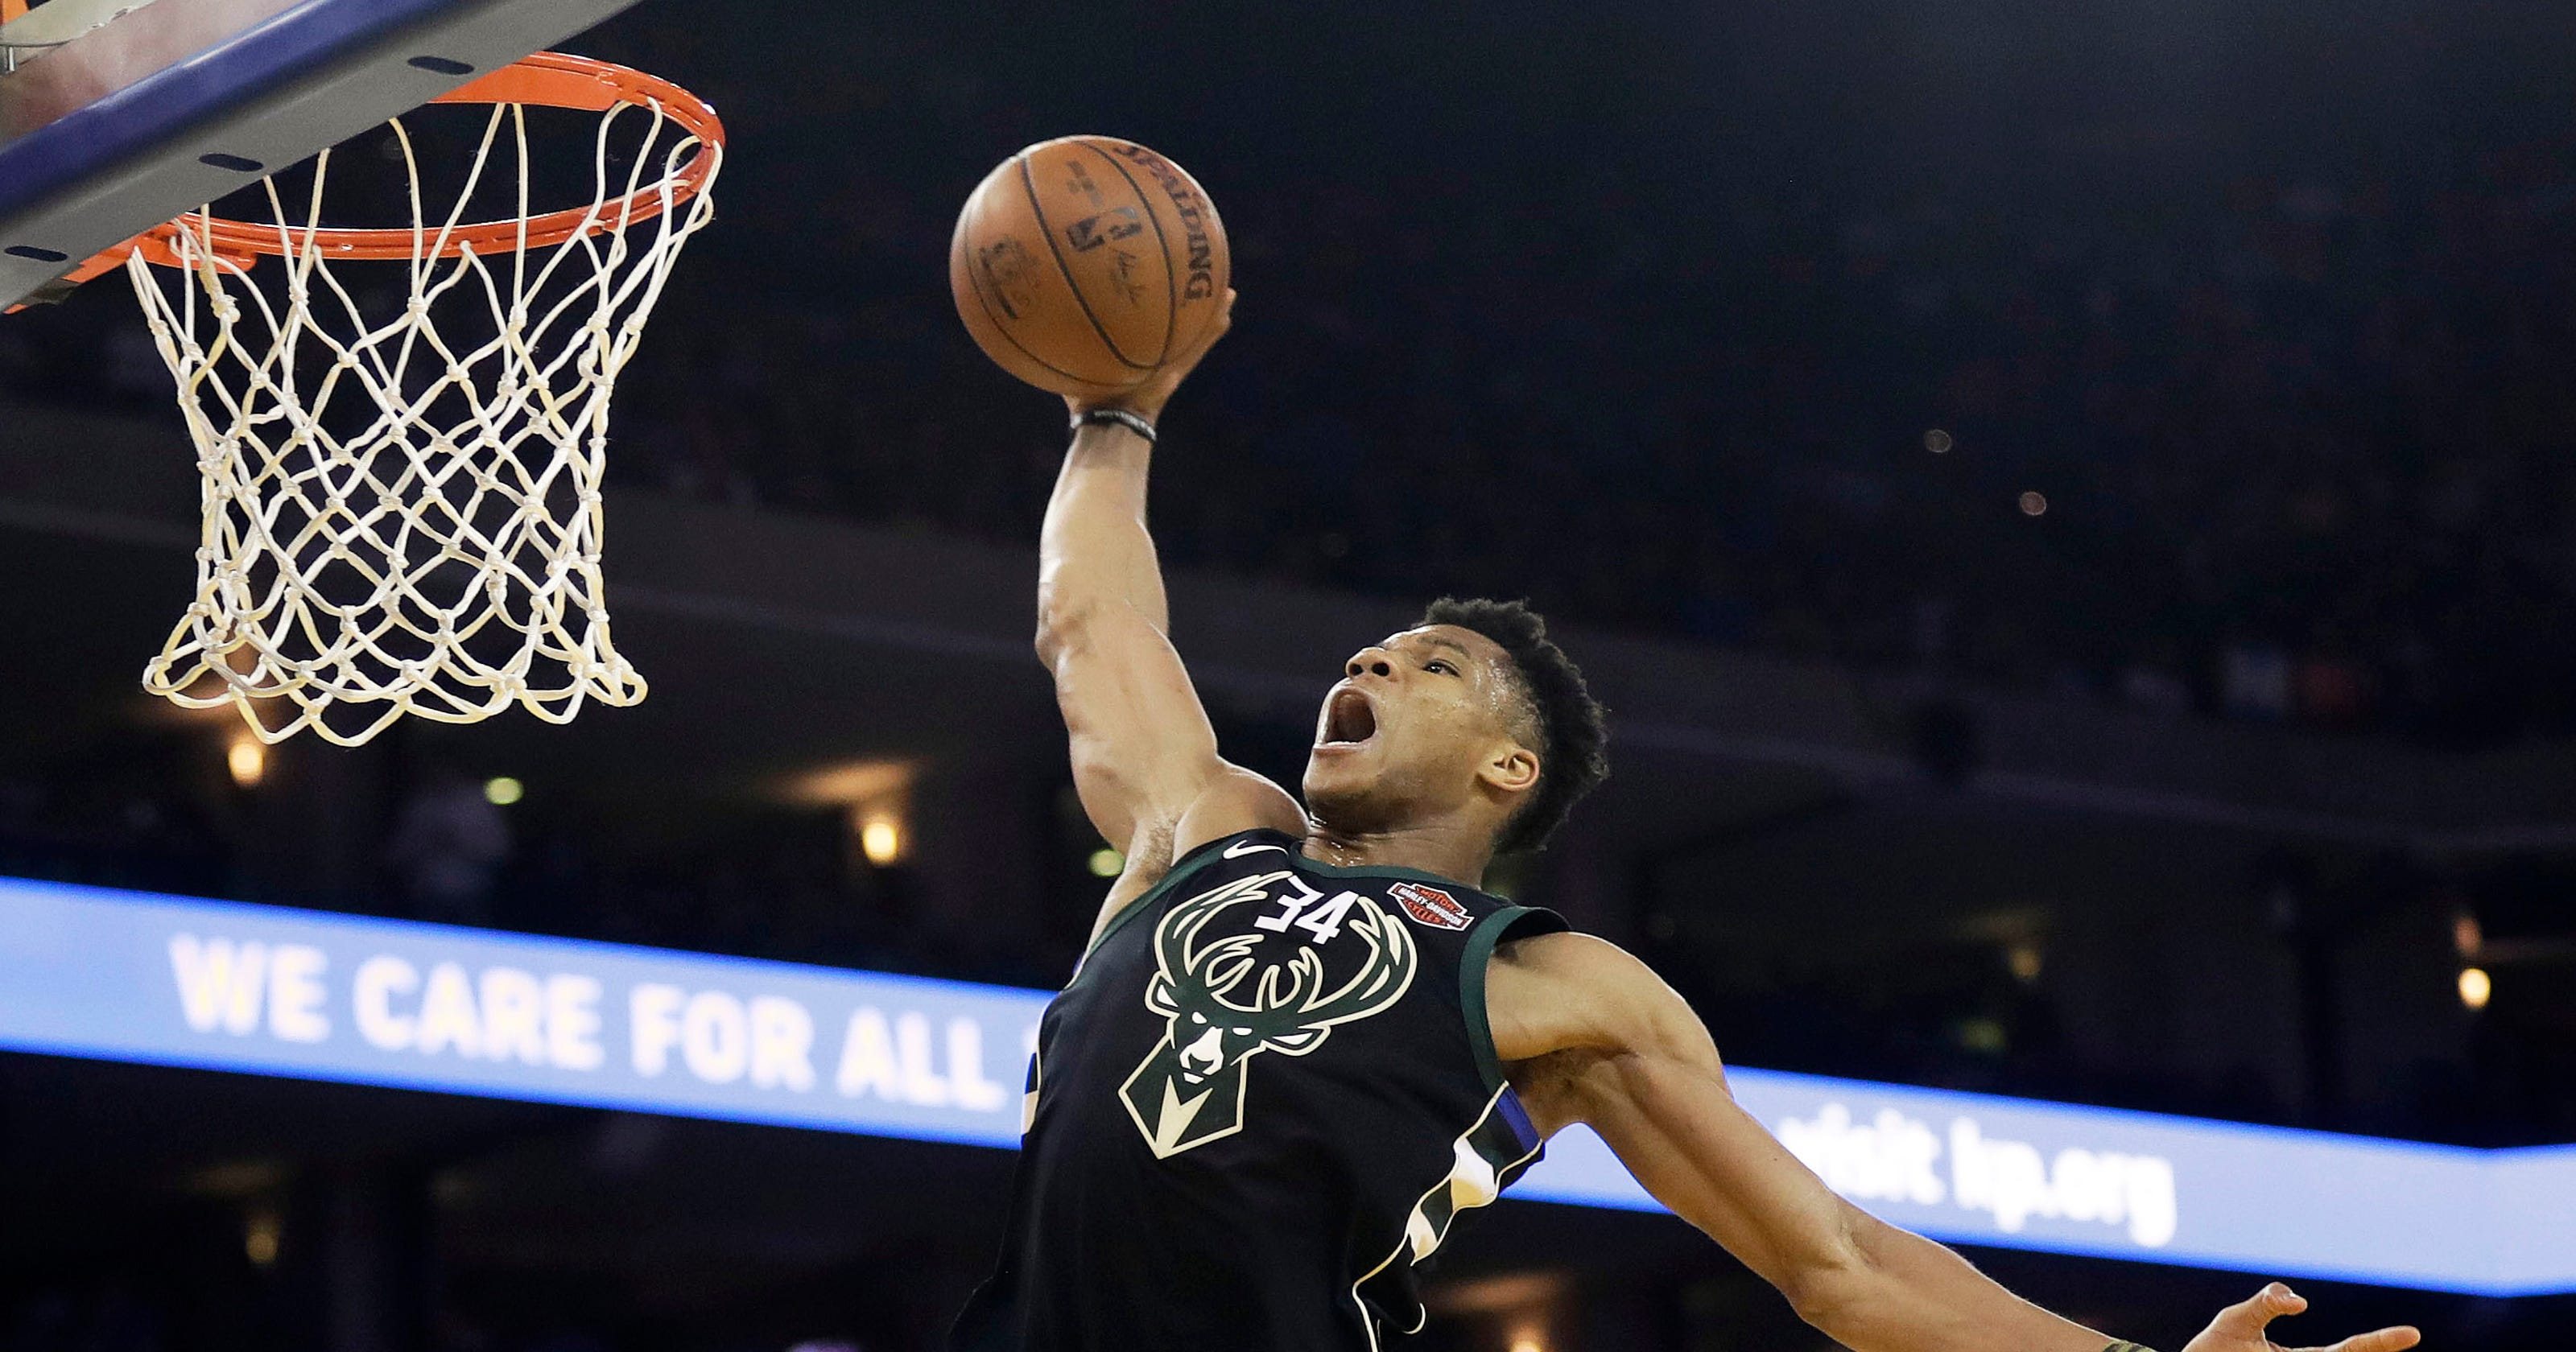 ee285811d85a Giannis Antetokounmpo appears in new  This is SportsCenter  commercial